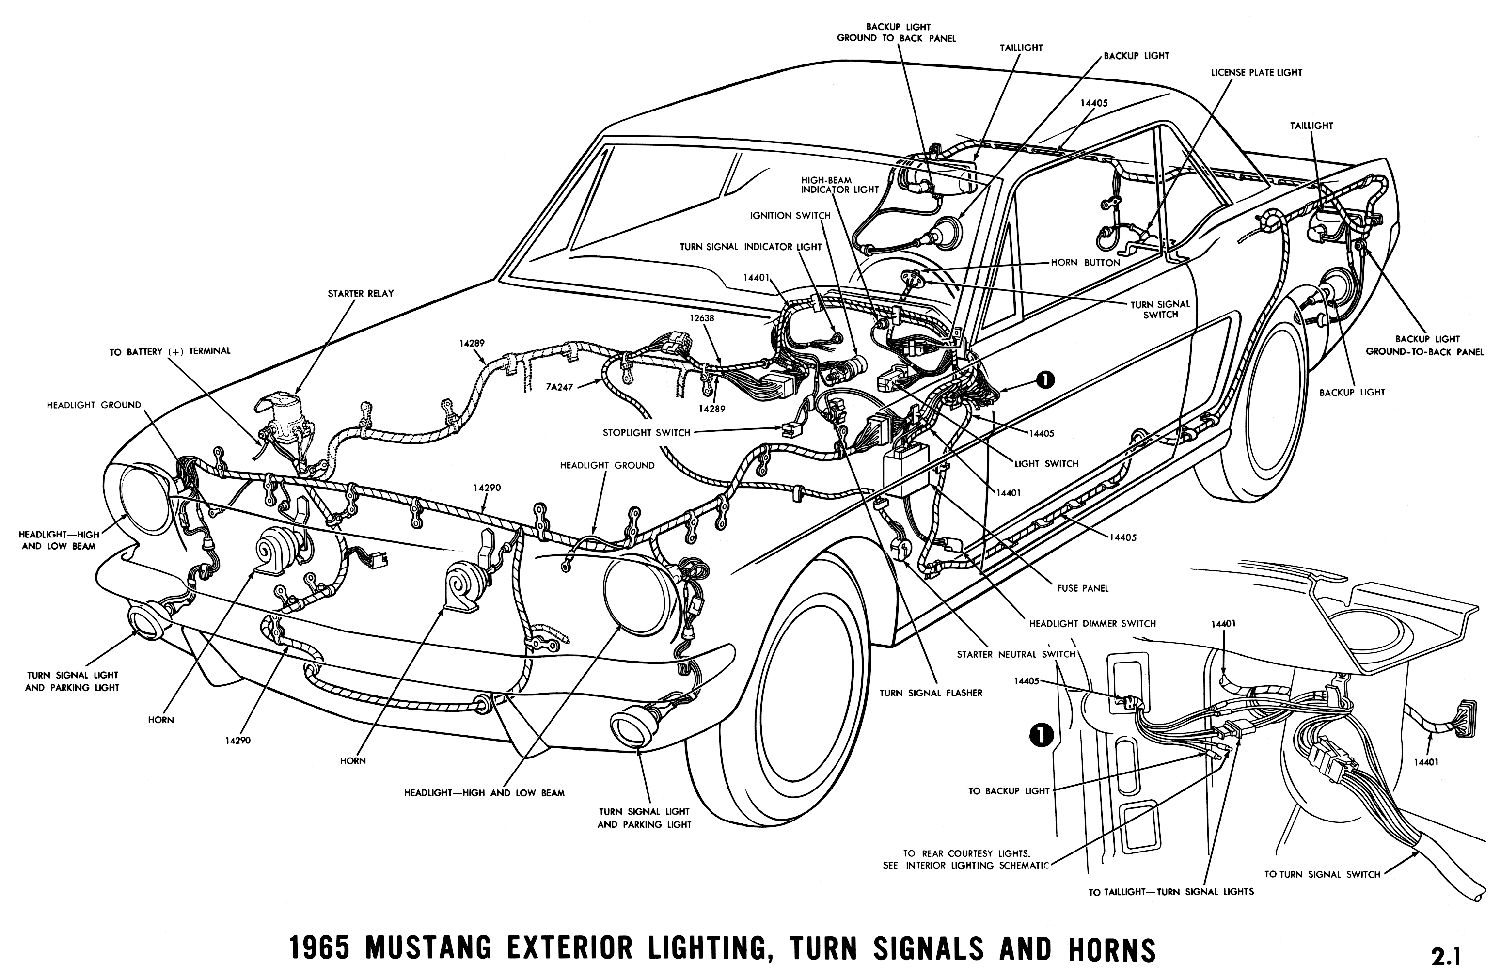 1965 mustang interior wiring diagram